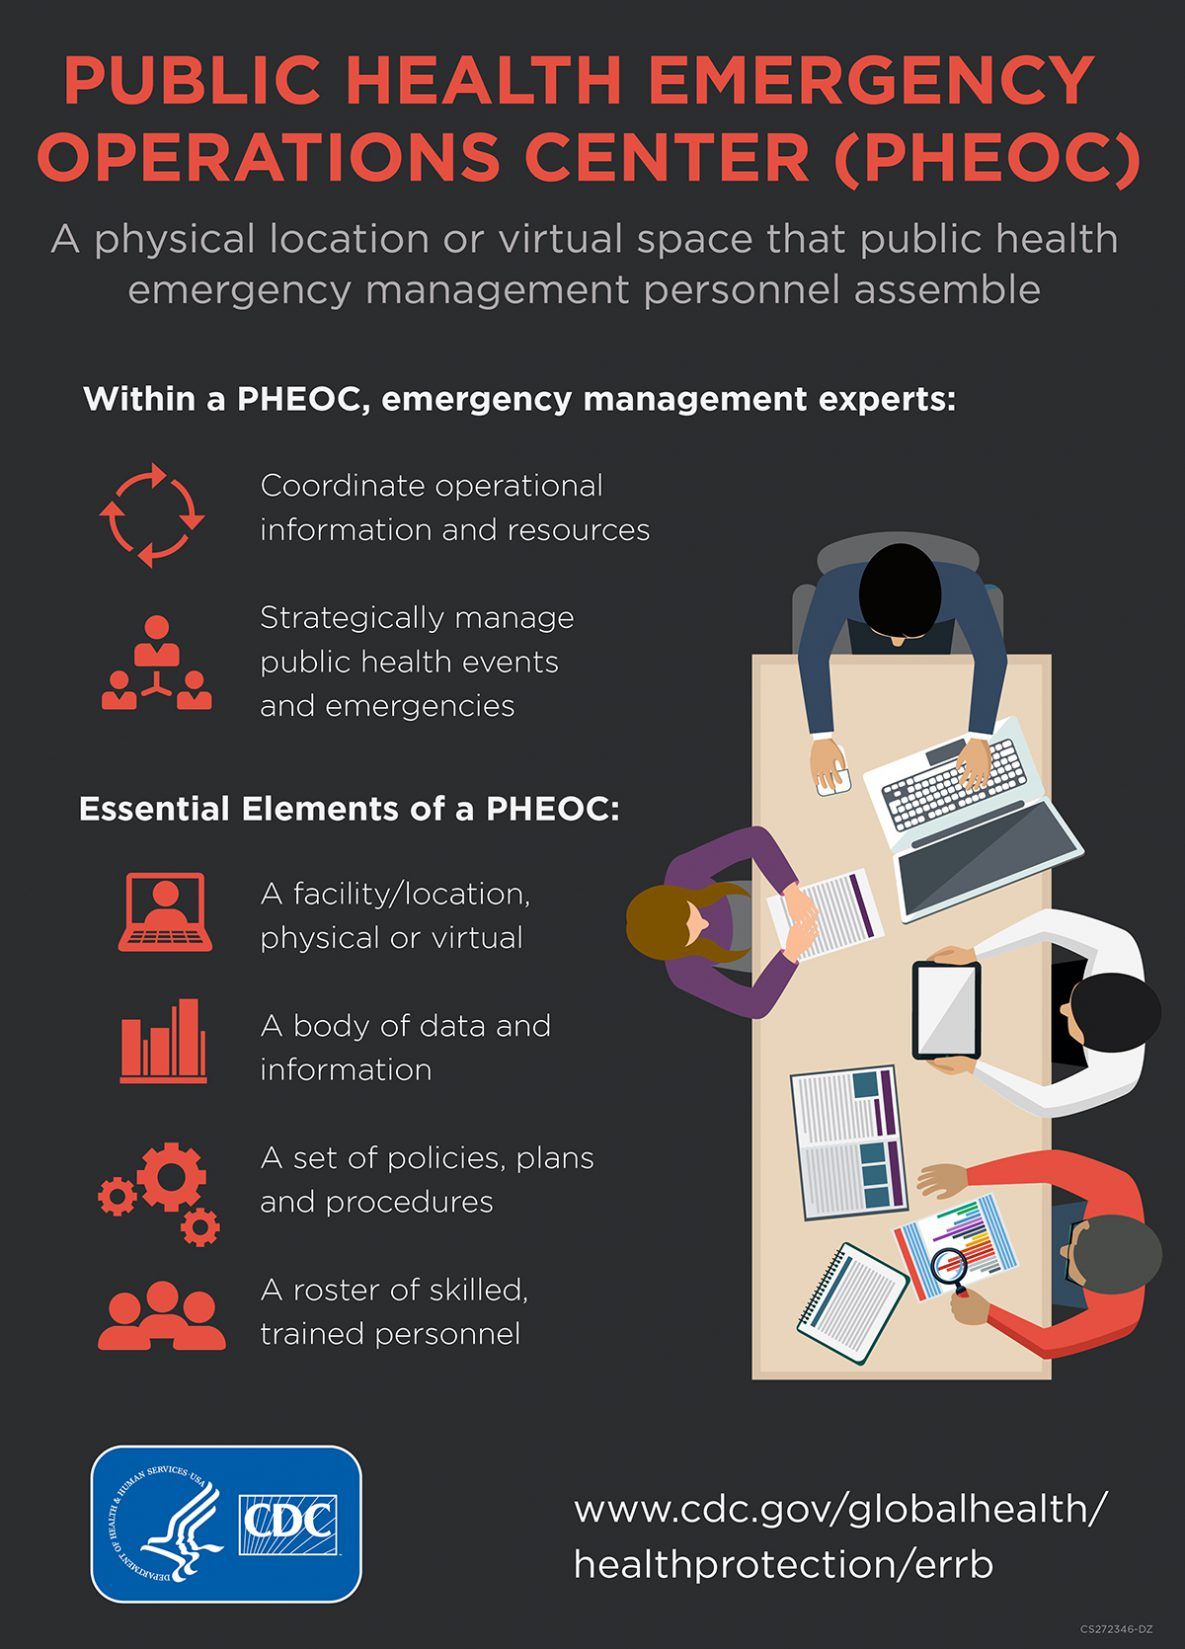 Public Health Emergency Operations Center (PHEOC) - A physical location or virtual space that public health emergency management personnel assemble